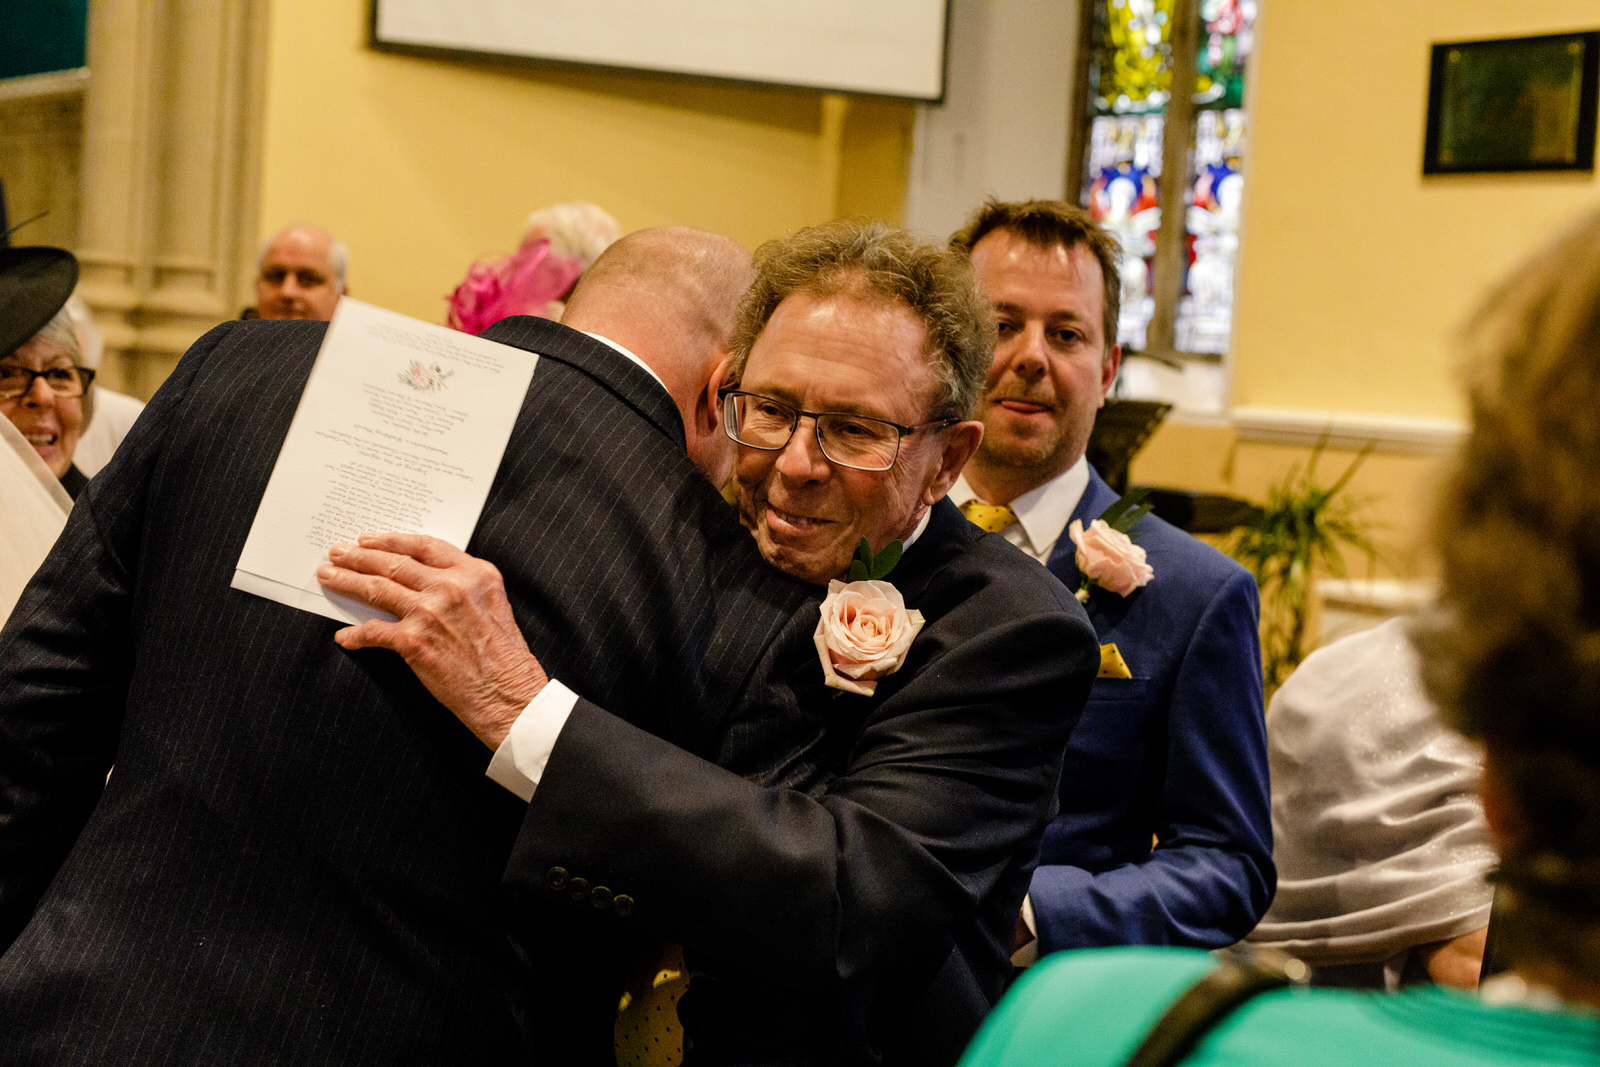 Roger-kenny-wedding-photographer-wicklow-glenview_039.jpg